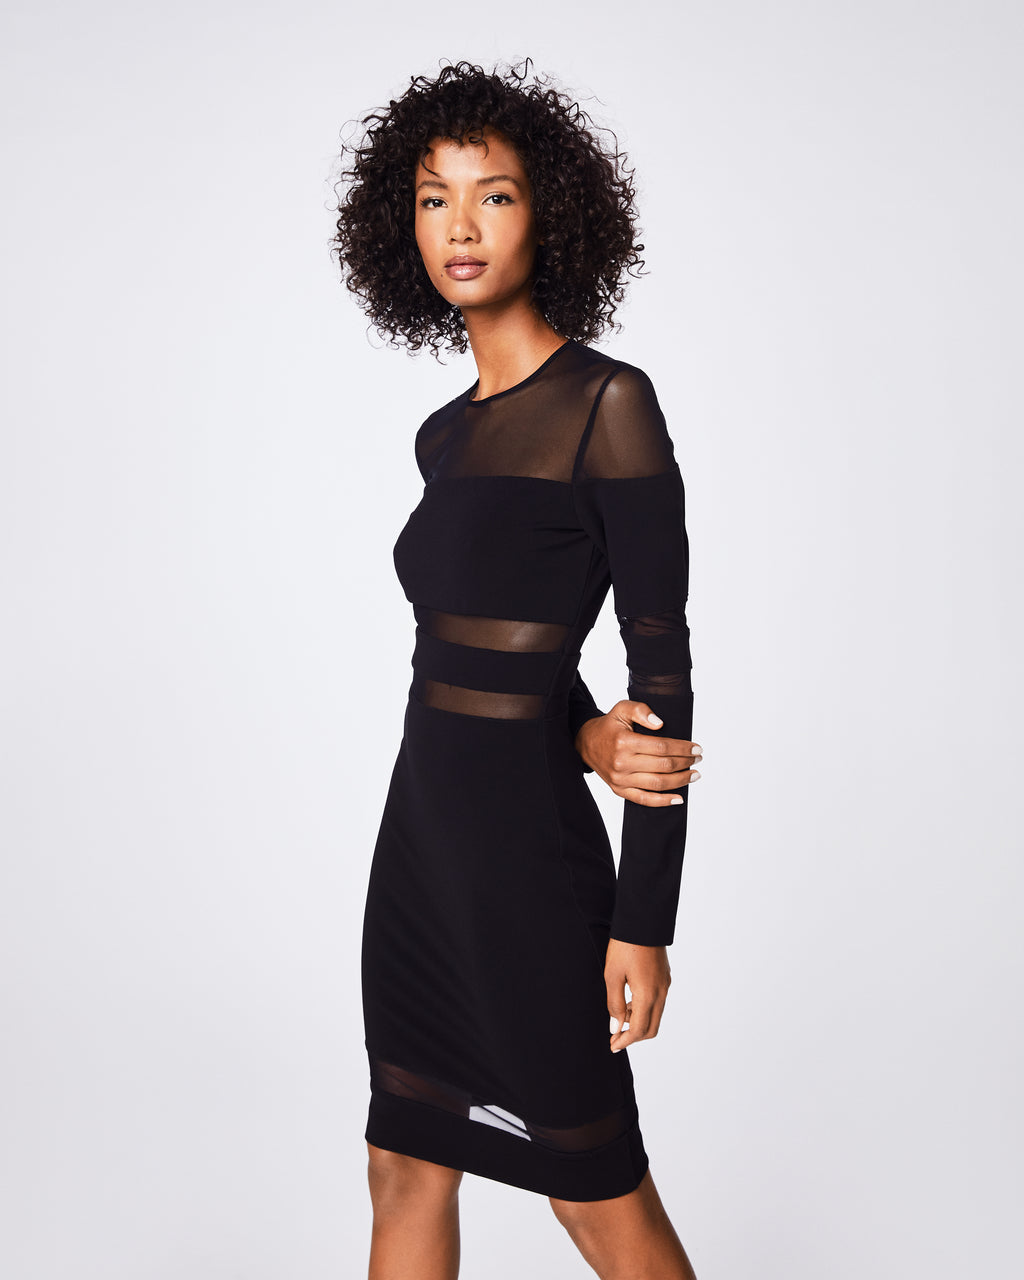 BT10116 - JERSEY MESH COMBO DRESS - dresses - short - This LBD is a wardrobe staple. Its sheer cutouts add a cool and sexy element to this fitted, figure-flattering silhouette.